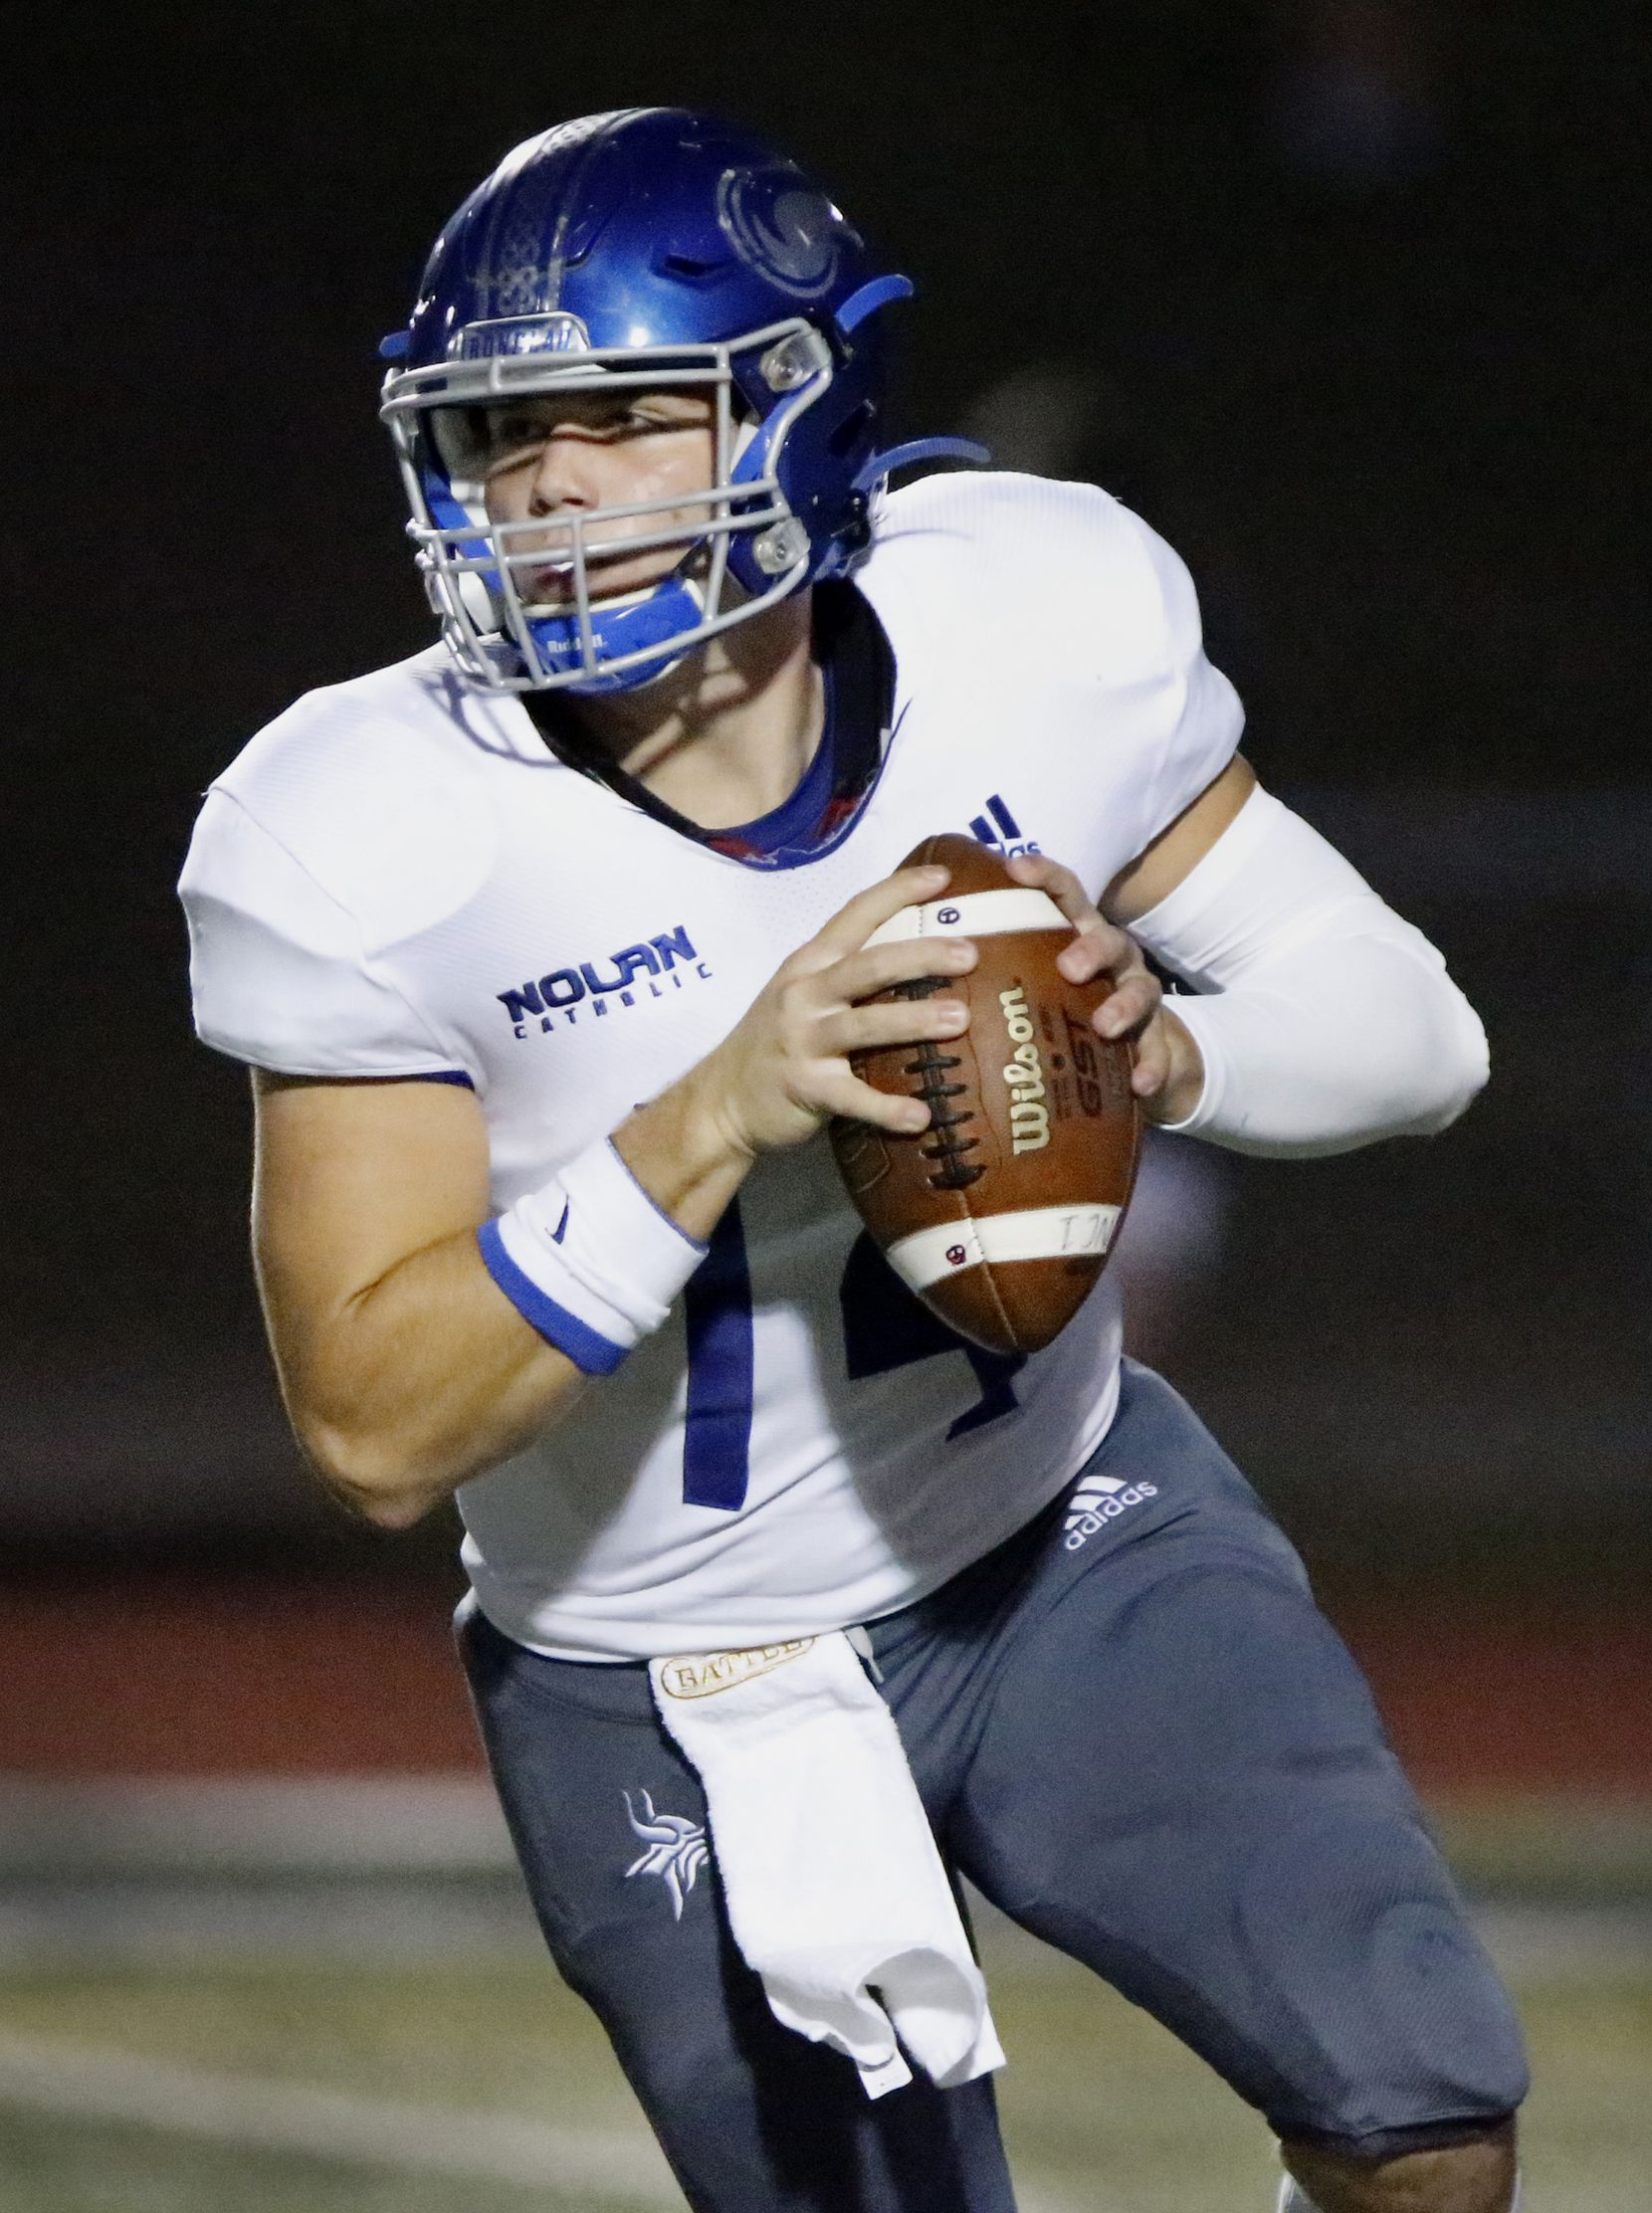 Nolan Catholic High School quarterback Jimmy Taylor (14) rolls out to pass during the first half as Prestonwood Christian Academy hosted Nolan Catholic High School at Lions Stadium in Plano on Friday night, October 9, 2020. (Stewart F. House/Special Contributor)